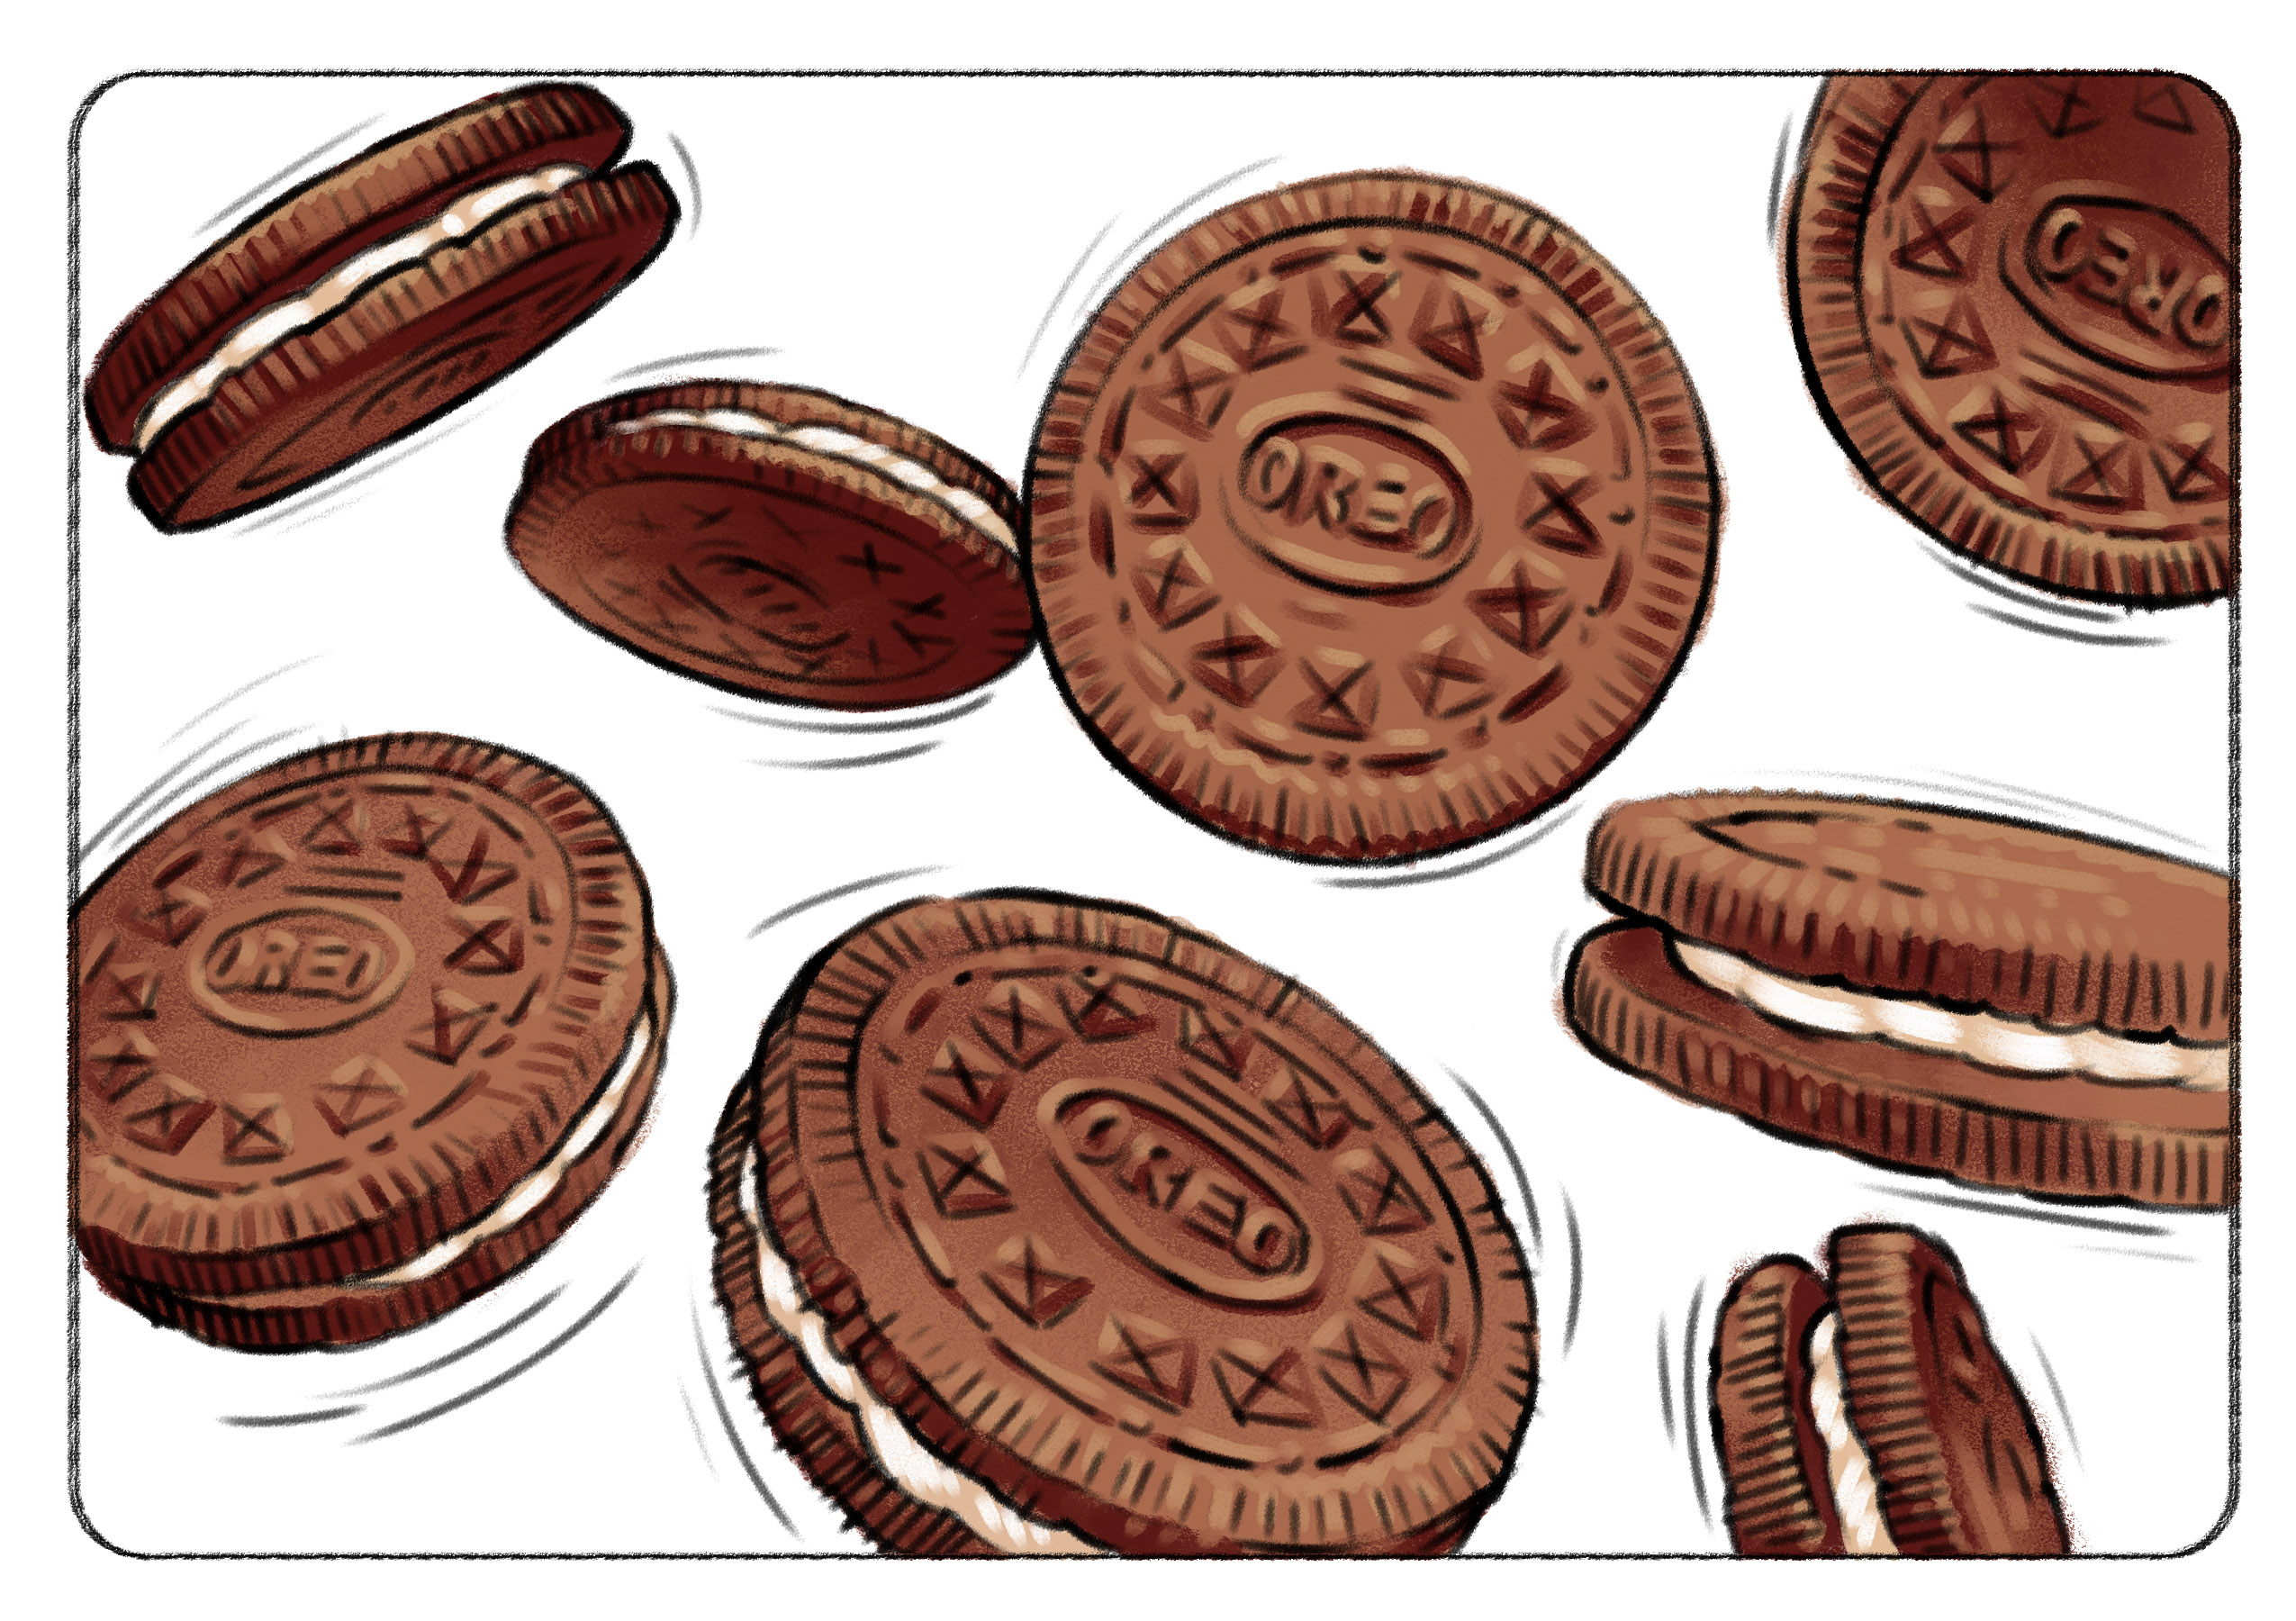 Mixins-Oreos Keith Ward Client Comp Illustrations